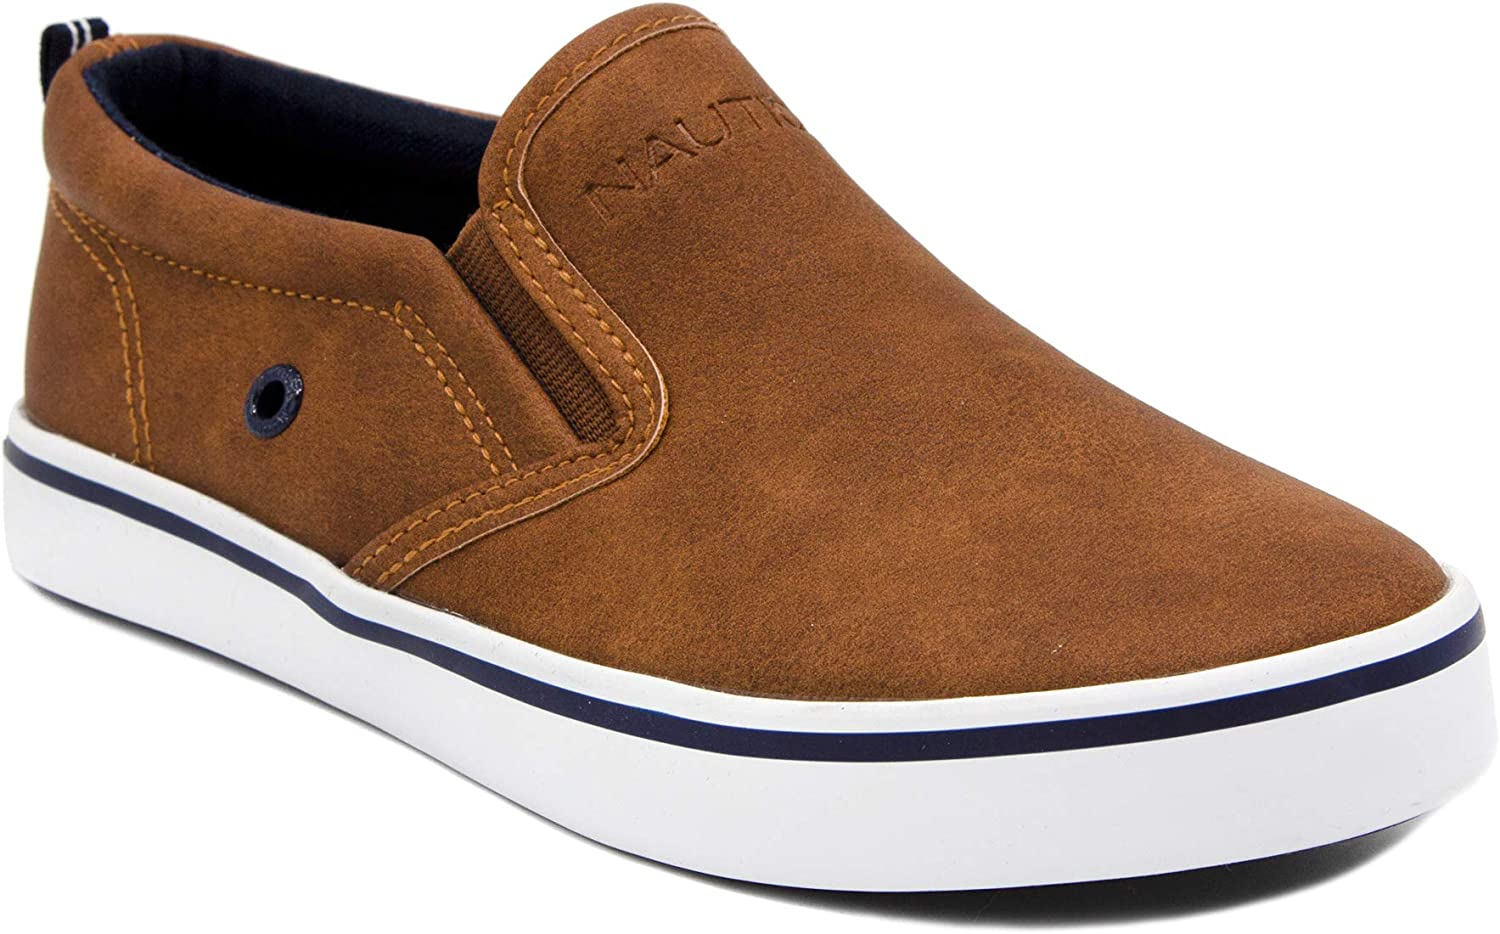 Nautica Kid's Slip-On San Jose Mall Casual Shoe Sneaker Youth-Toddl Athletic Direct sale of manufacturer -